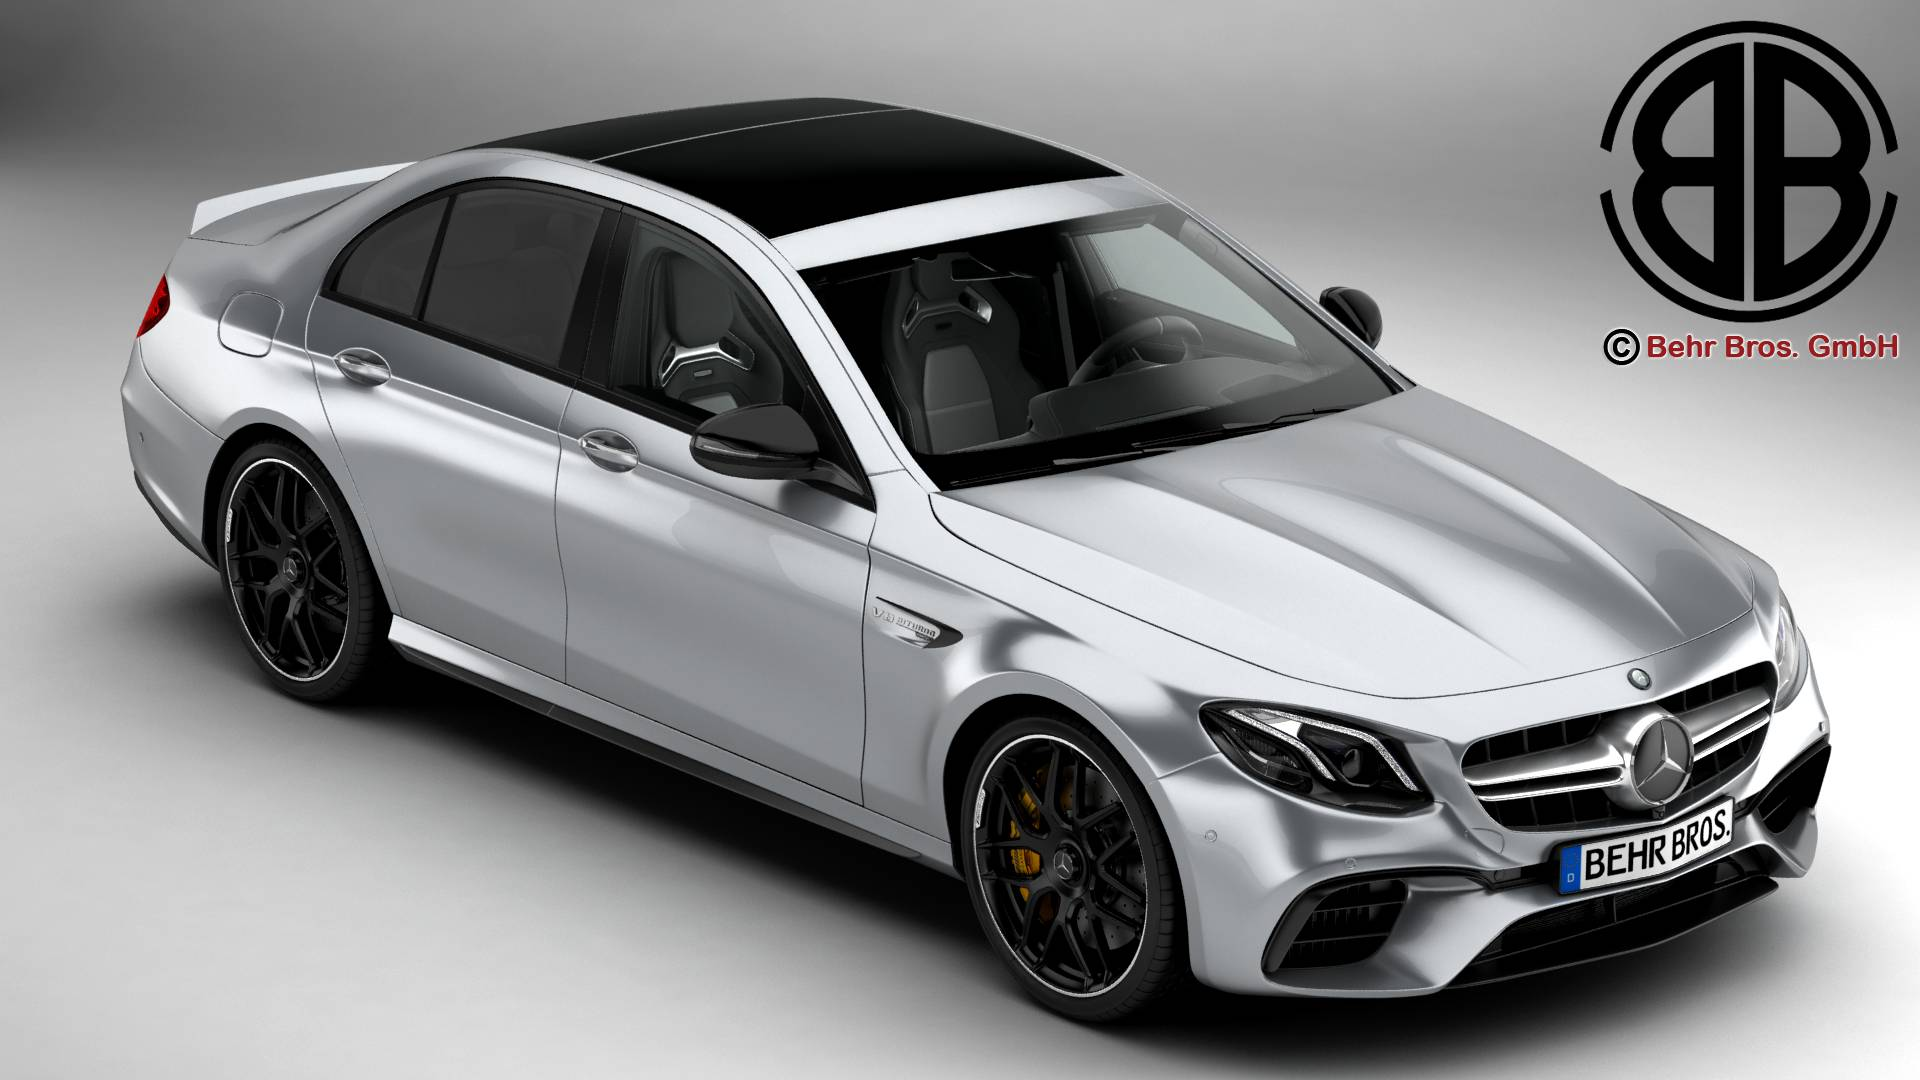 mercedes amg e63 s 2018 3d model buy mercedes amg e63 s 2018 3d model flatpyramid. Black Bedroom Furniture Sets. Home Design Ideas